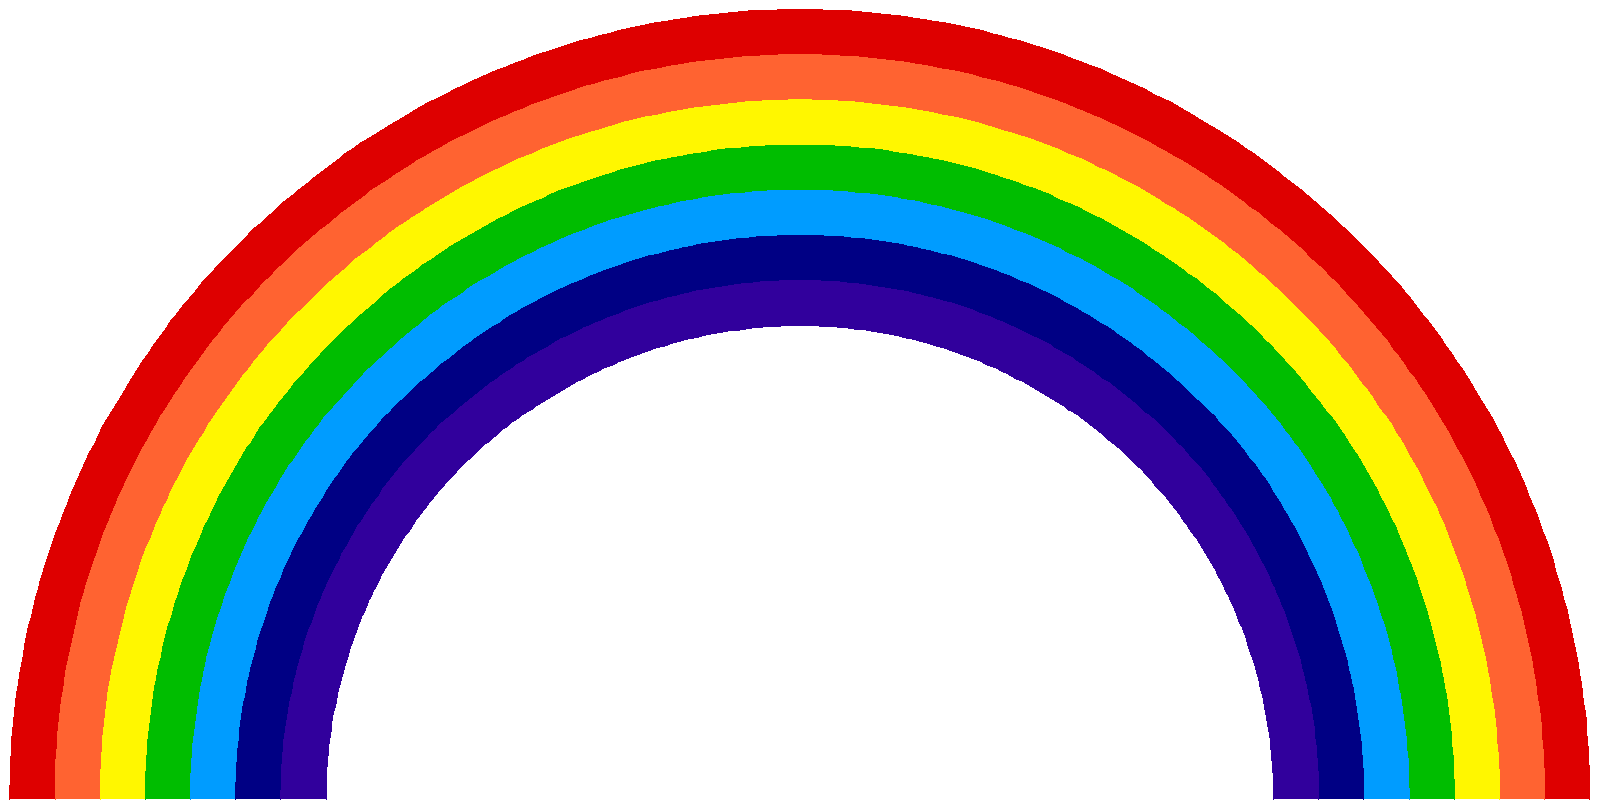 Musings on Realities: What's at the End of YOUR Rainbow?